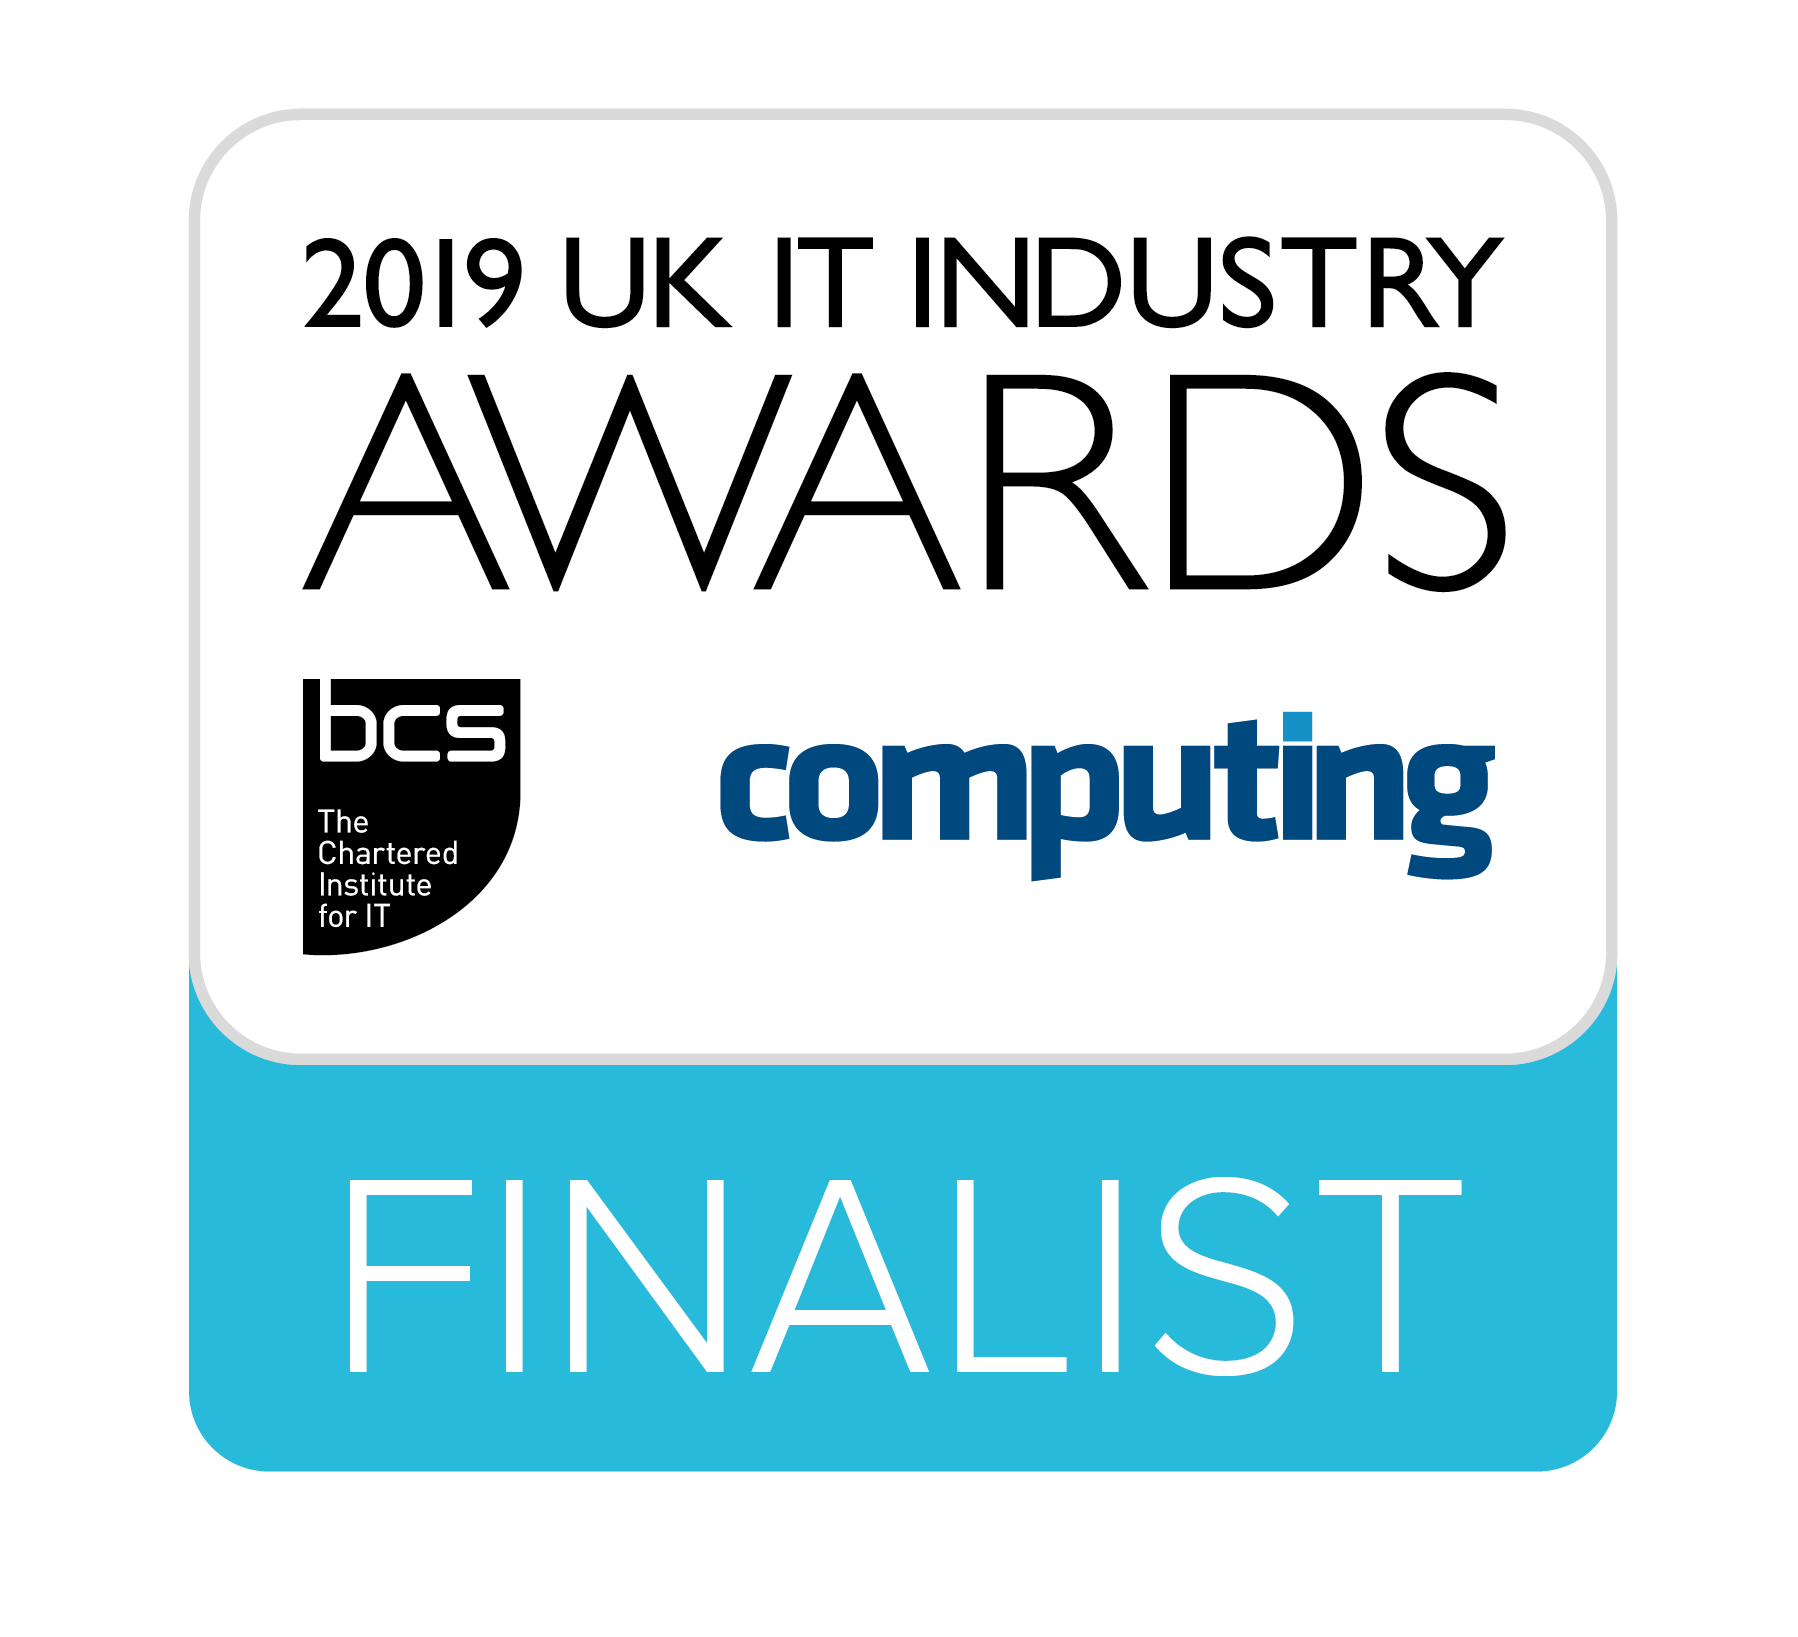 2019 UK IT Industryt Awards Finalist